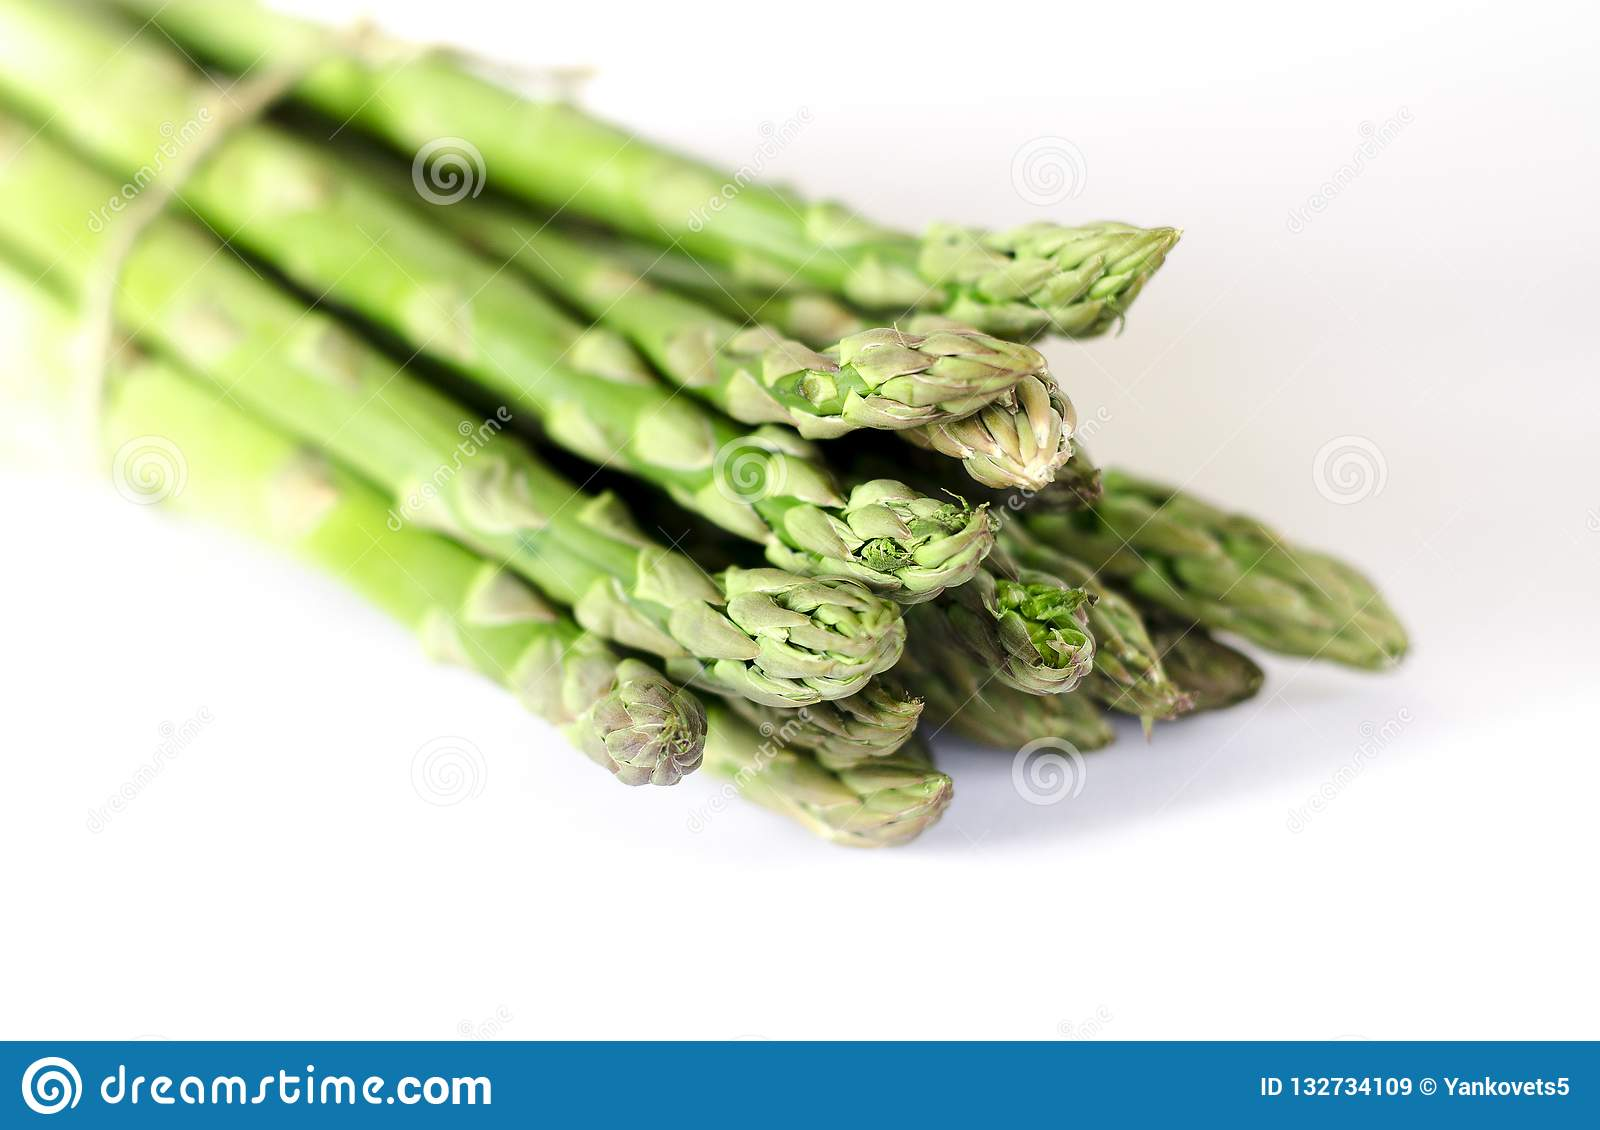 Food background asparagus flat lay pattern. bunch of fresh green asparagus on white background, top view